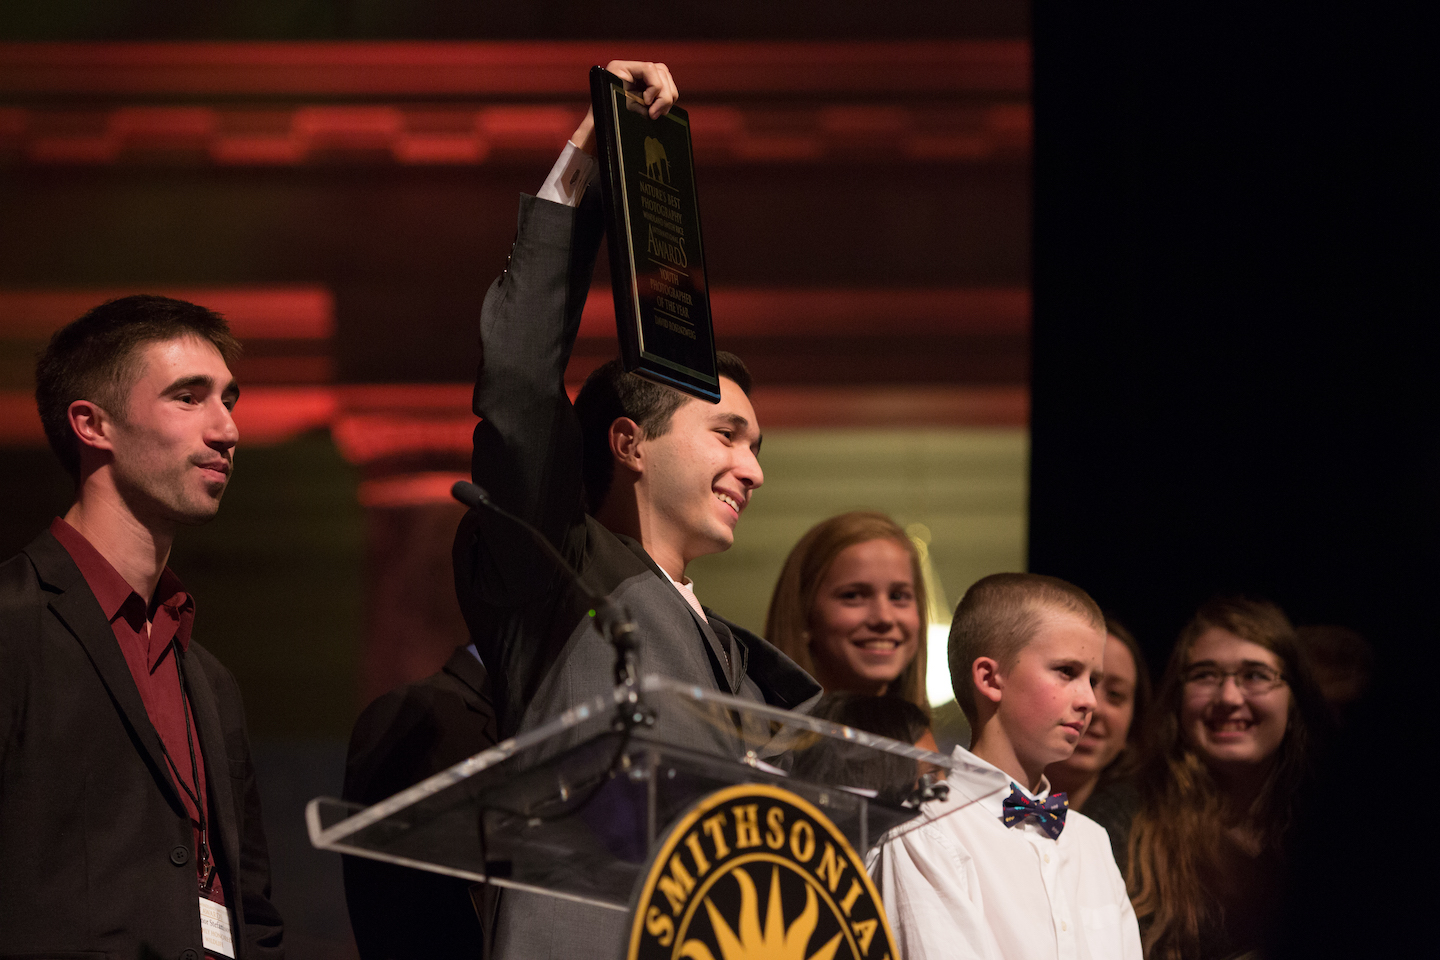 David Rosenzweig, 2016 Youth Photographer of the Year raises his award in celebration while our friends Connor Stephanison (left), Ashleigh Scully and Jenaya look on (Photo Credit: Copyright NBP Awards)